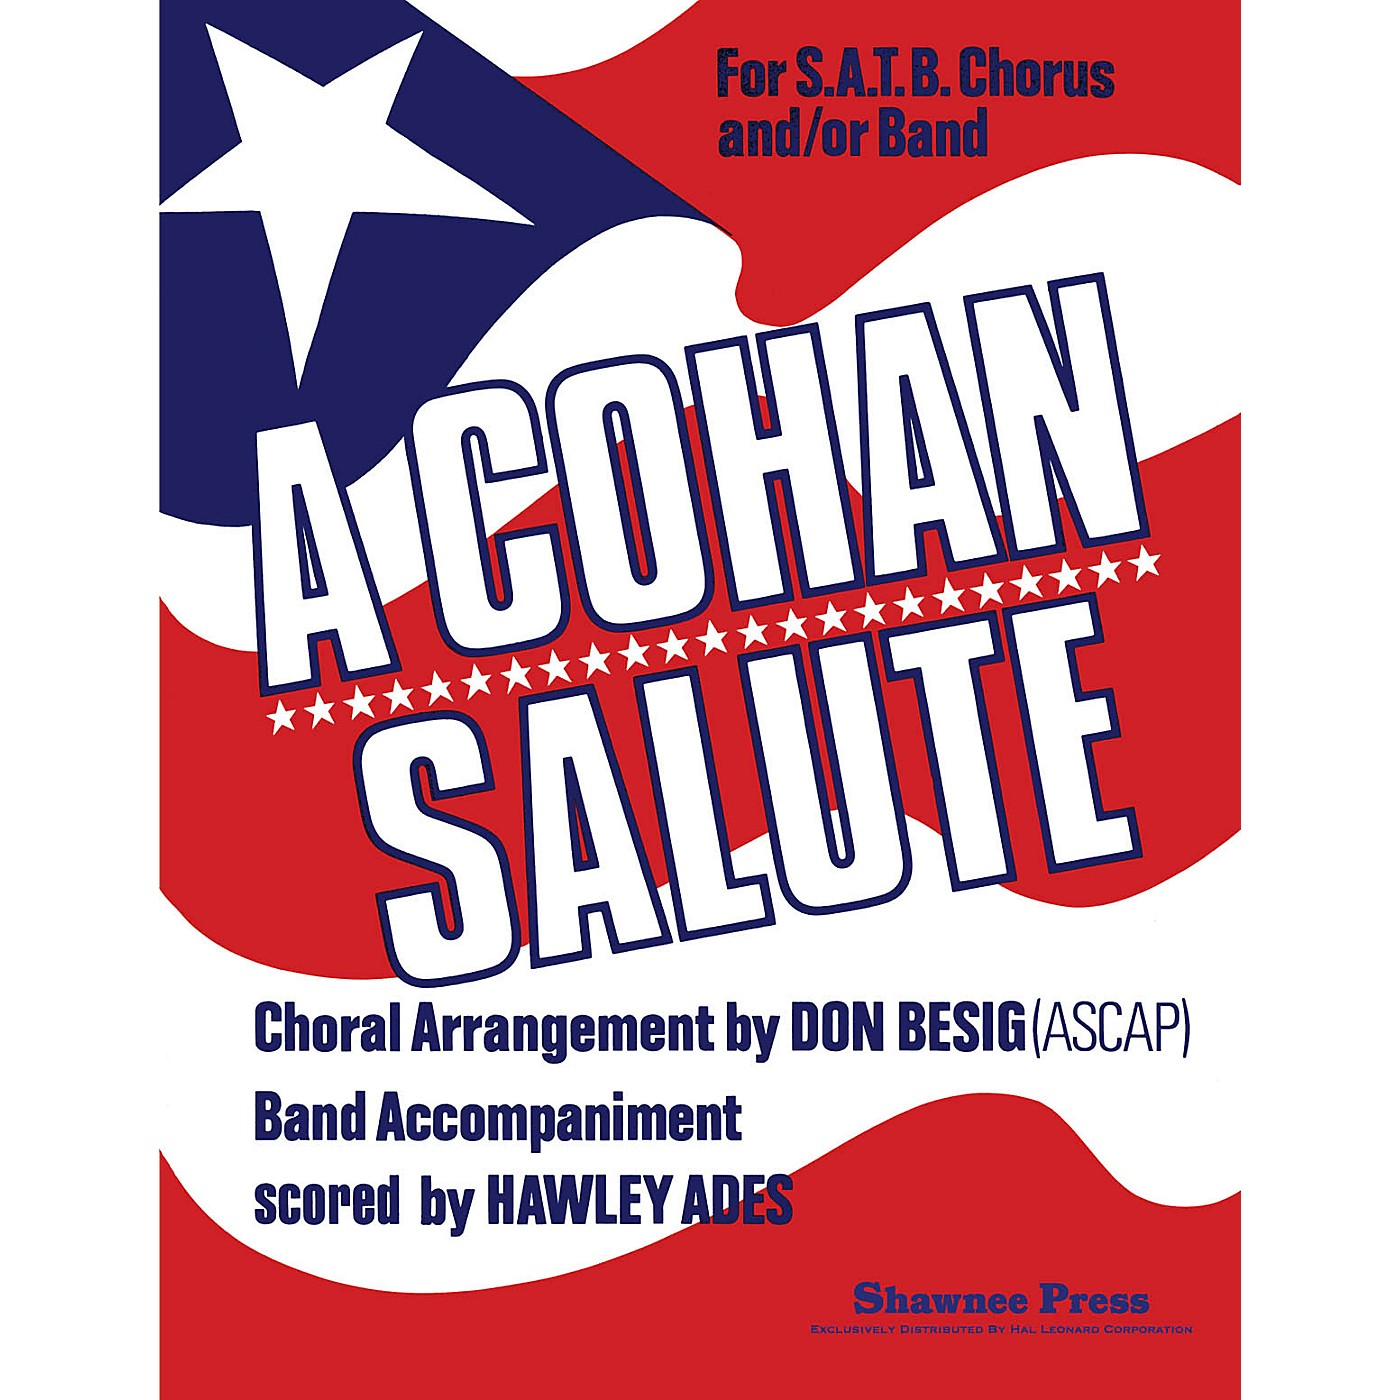 Shawnee Press Cohan Salute Concert Band Level 3 Arranged by Hawley Ades thumbnail